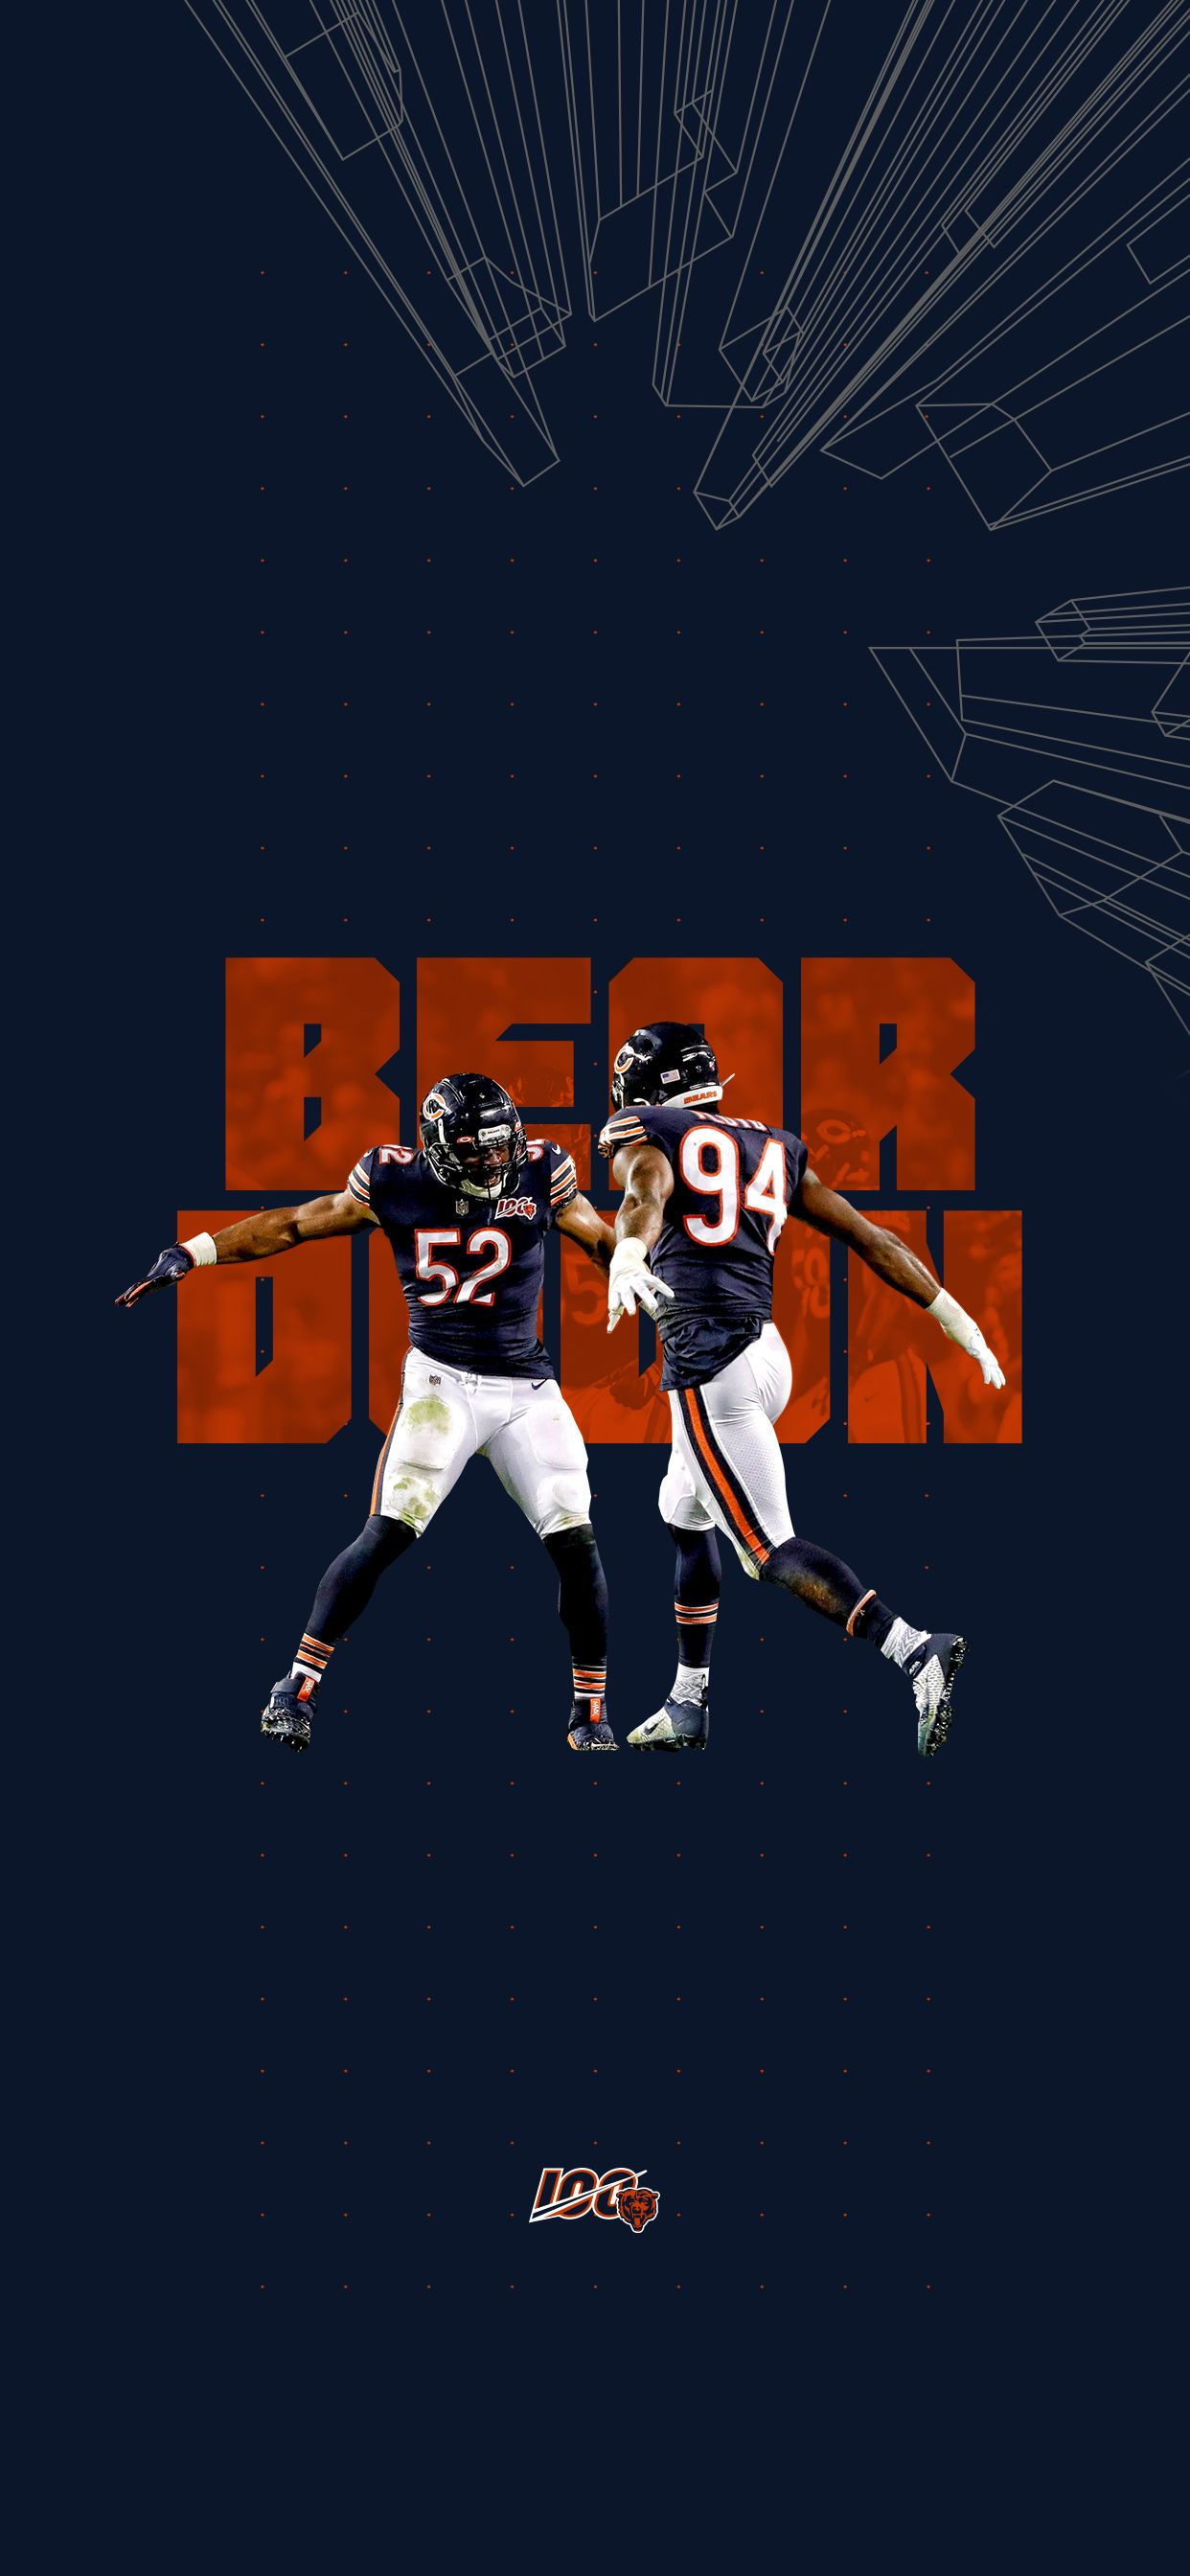 Wallpapers Chicago Bears Official Website In 2020 Chicago Cubs Wallpaper Chicago Bears Wallpaper Chicago Bears